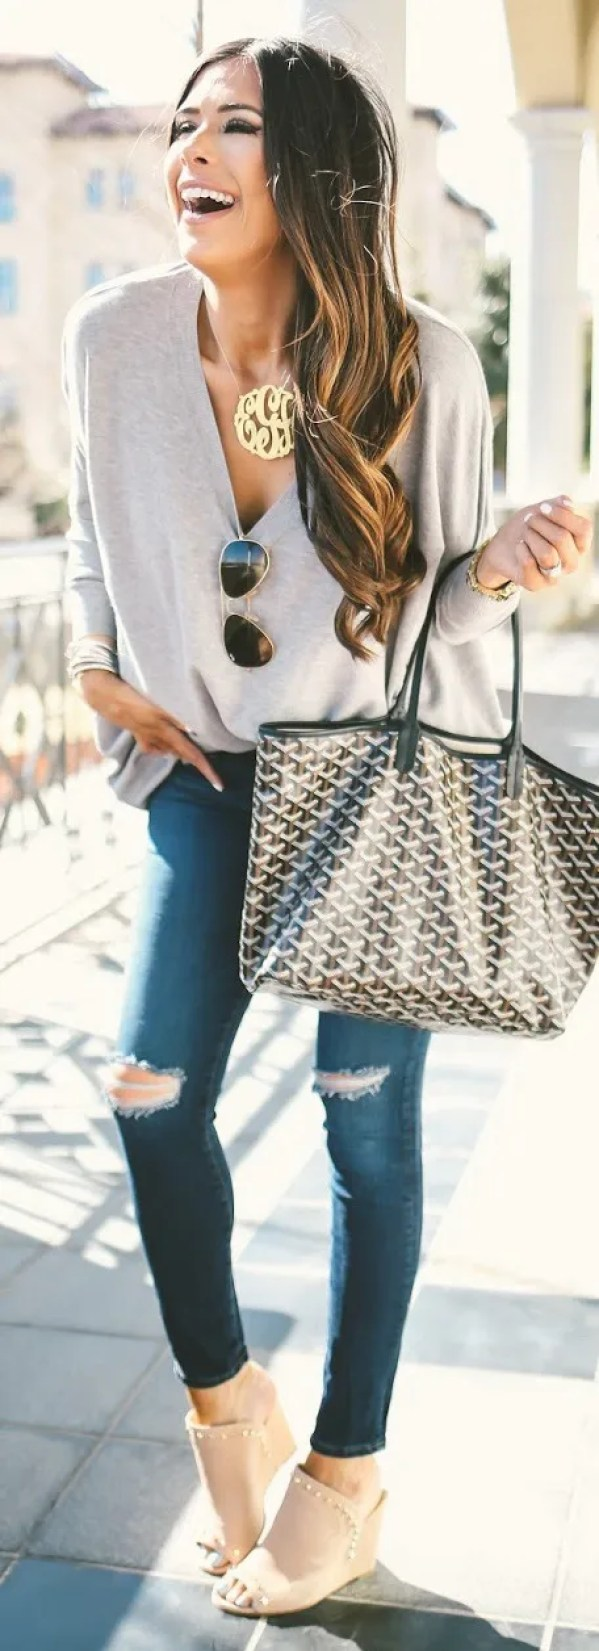 30 Stylish and Chic Summer Outfit Ideas For Your ...